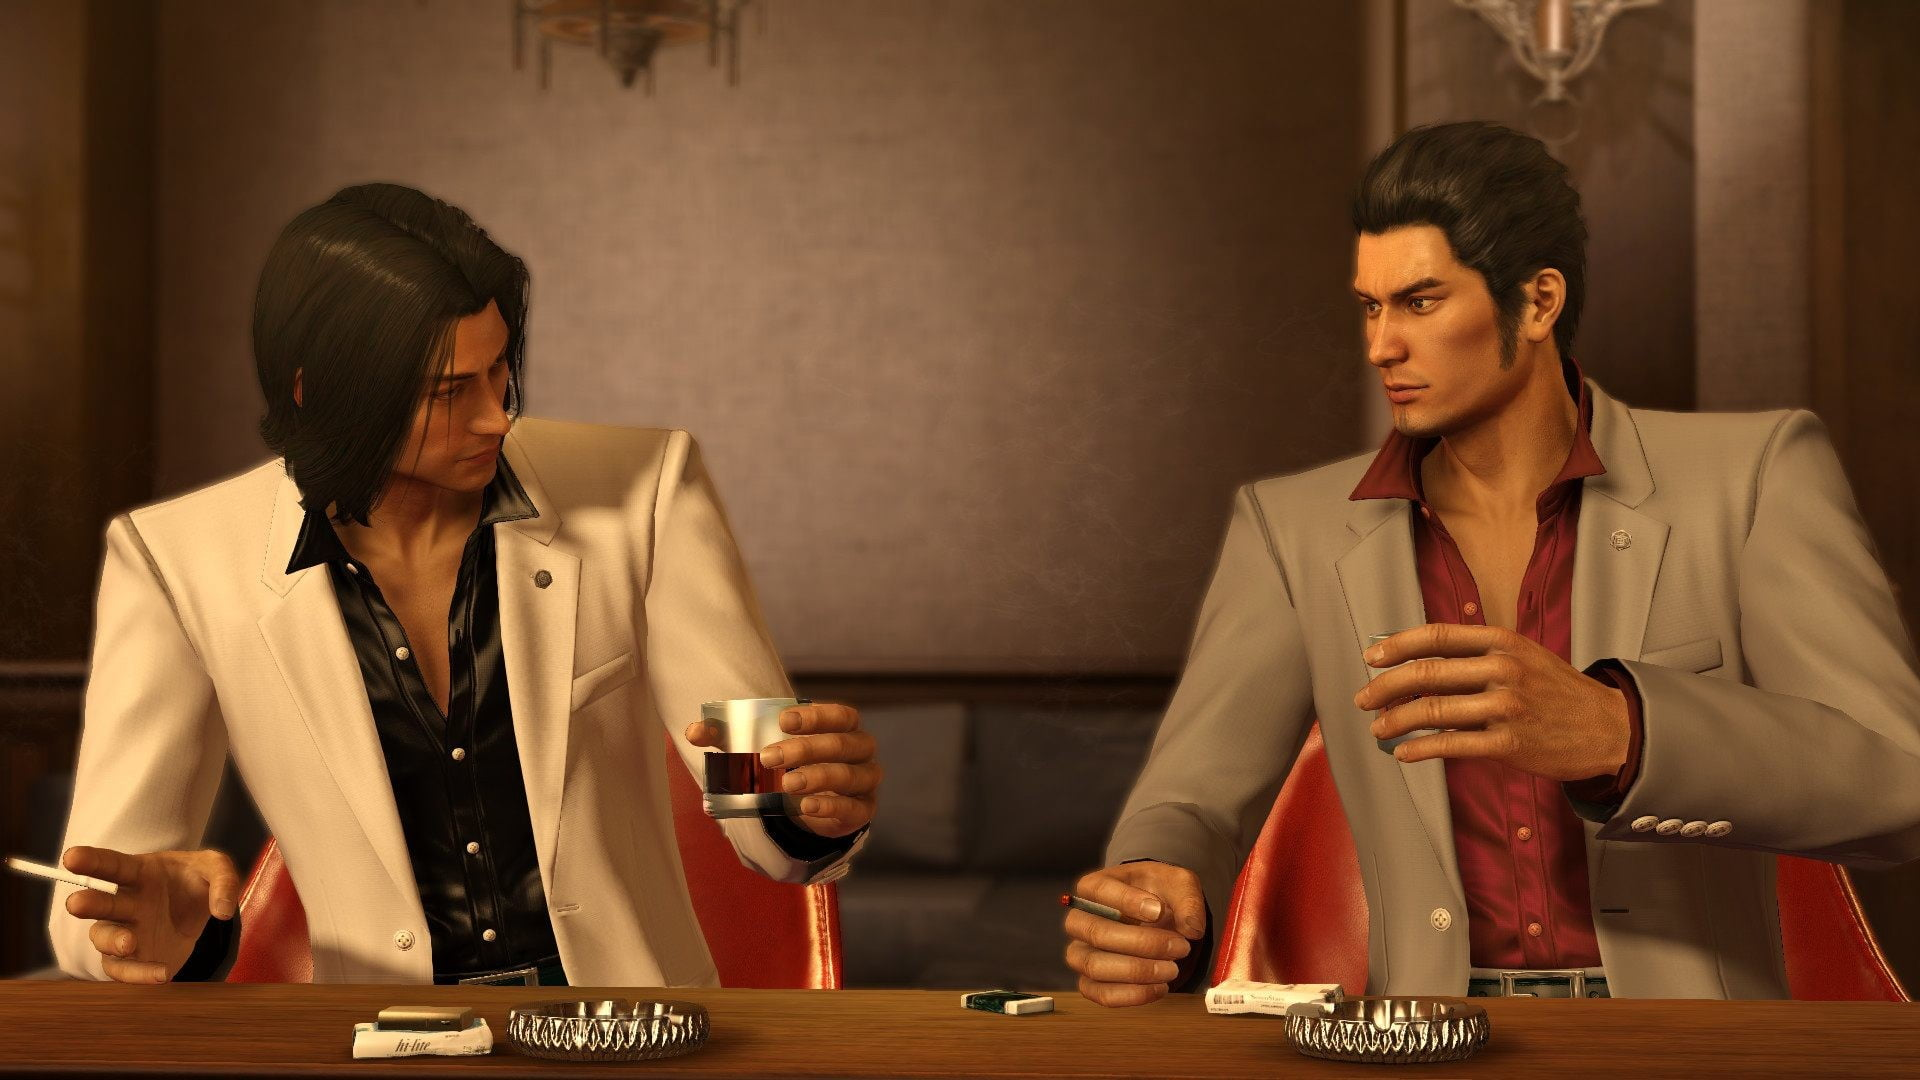 Yakuza director thinks PS5's evolution will focus on A.I. and machine learning